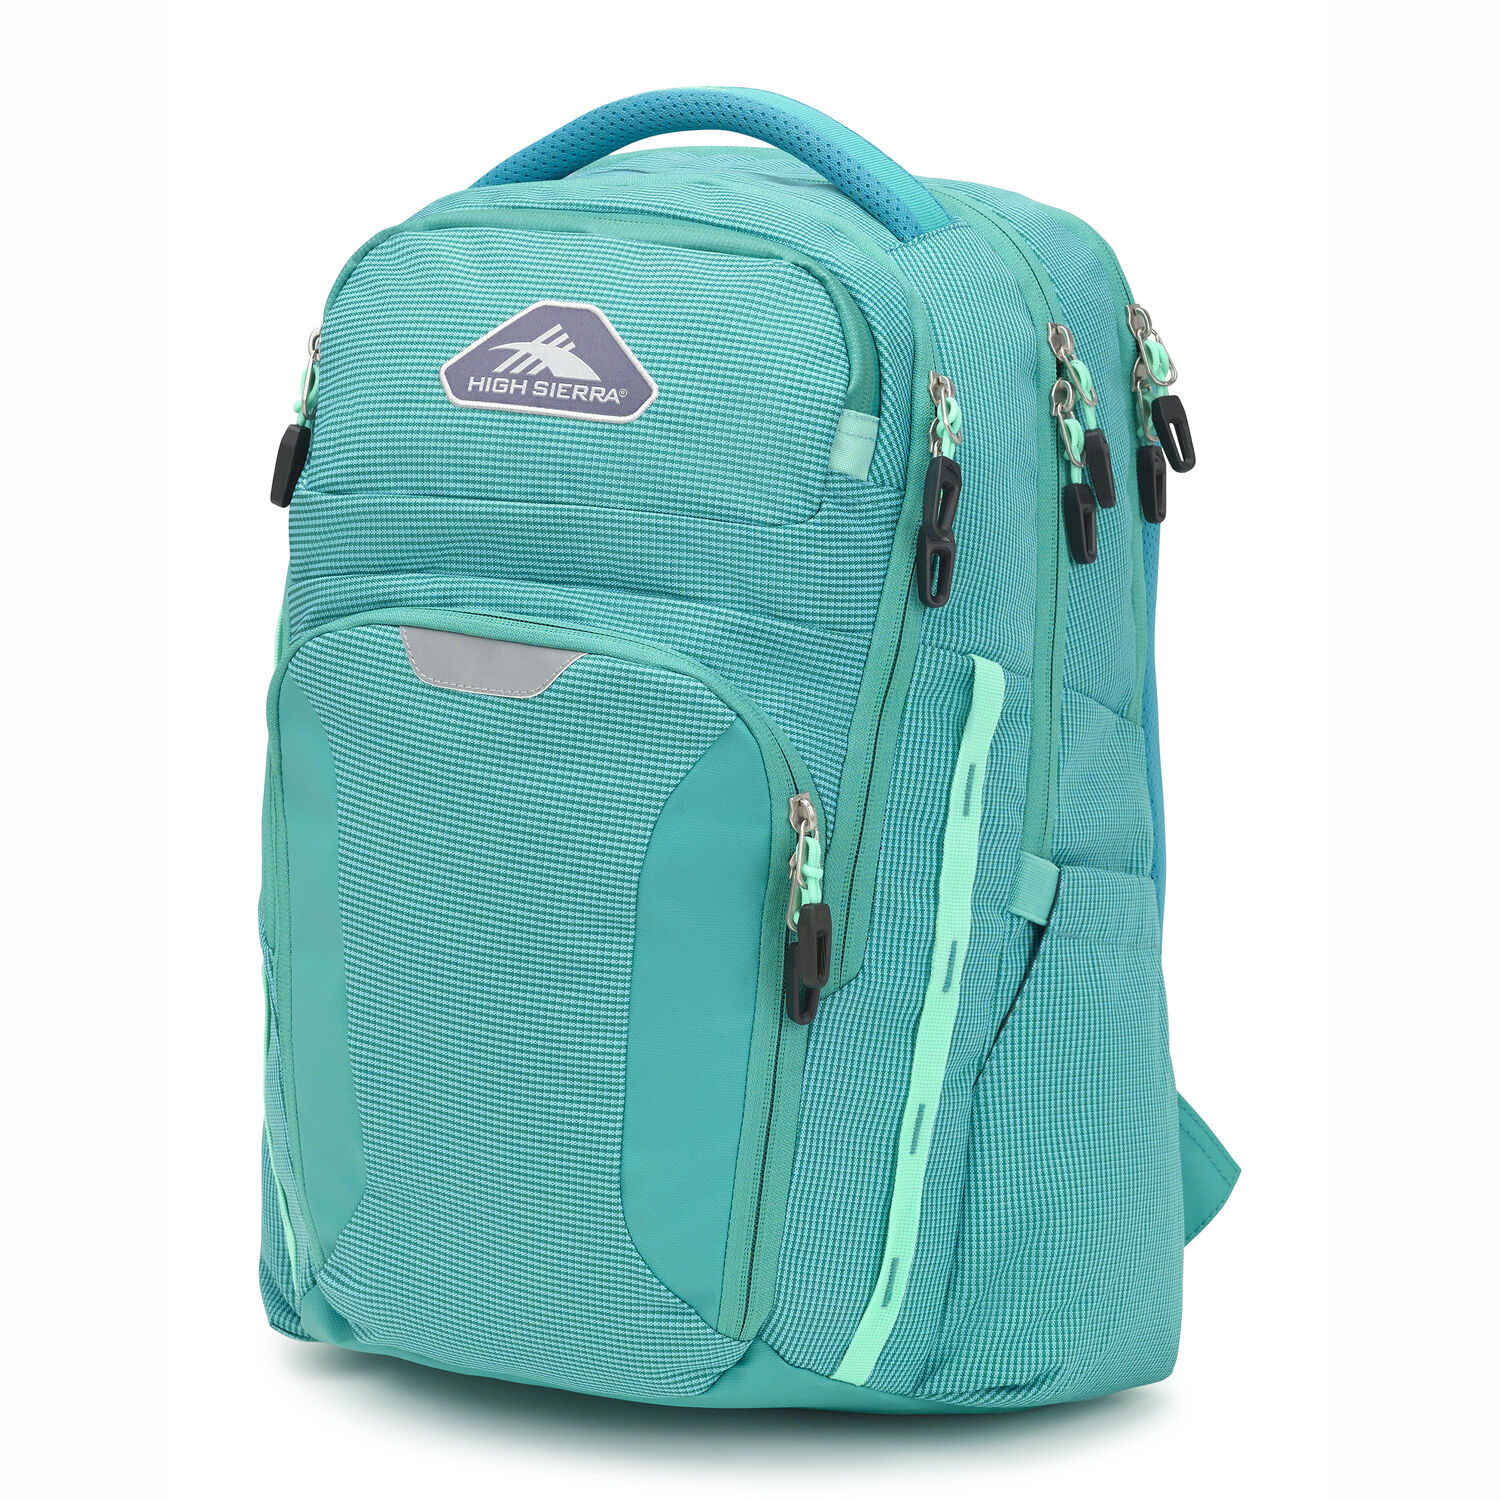 High Sierra Autry in the color Turquoise/Aquamarine.